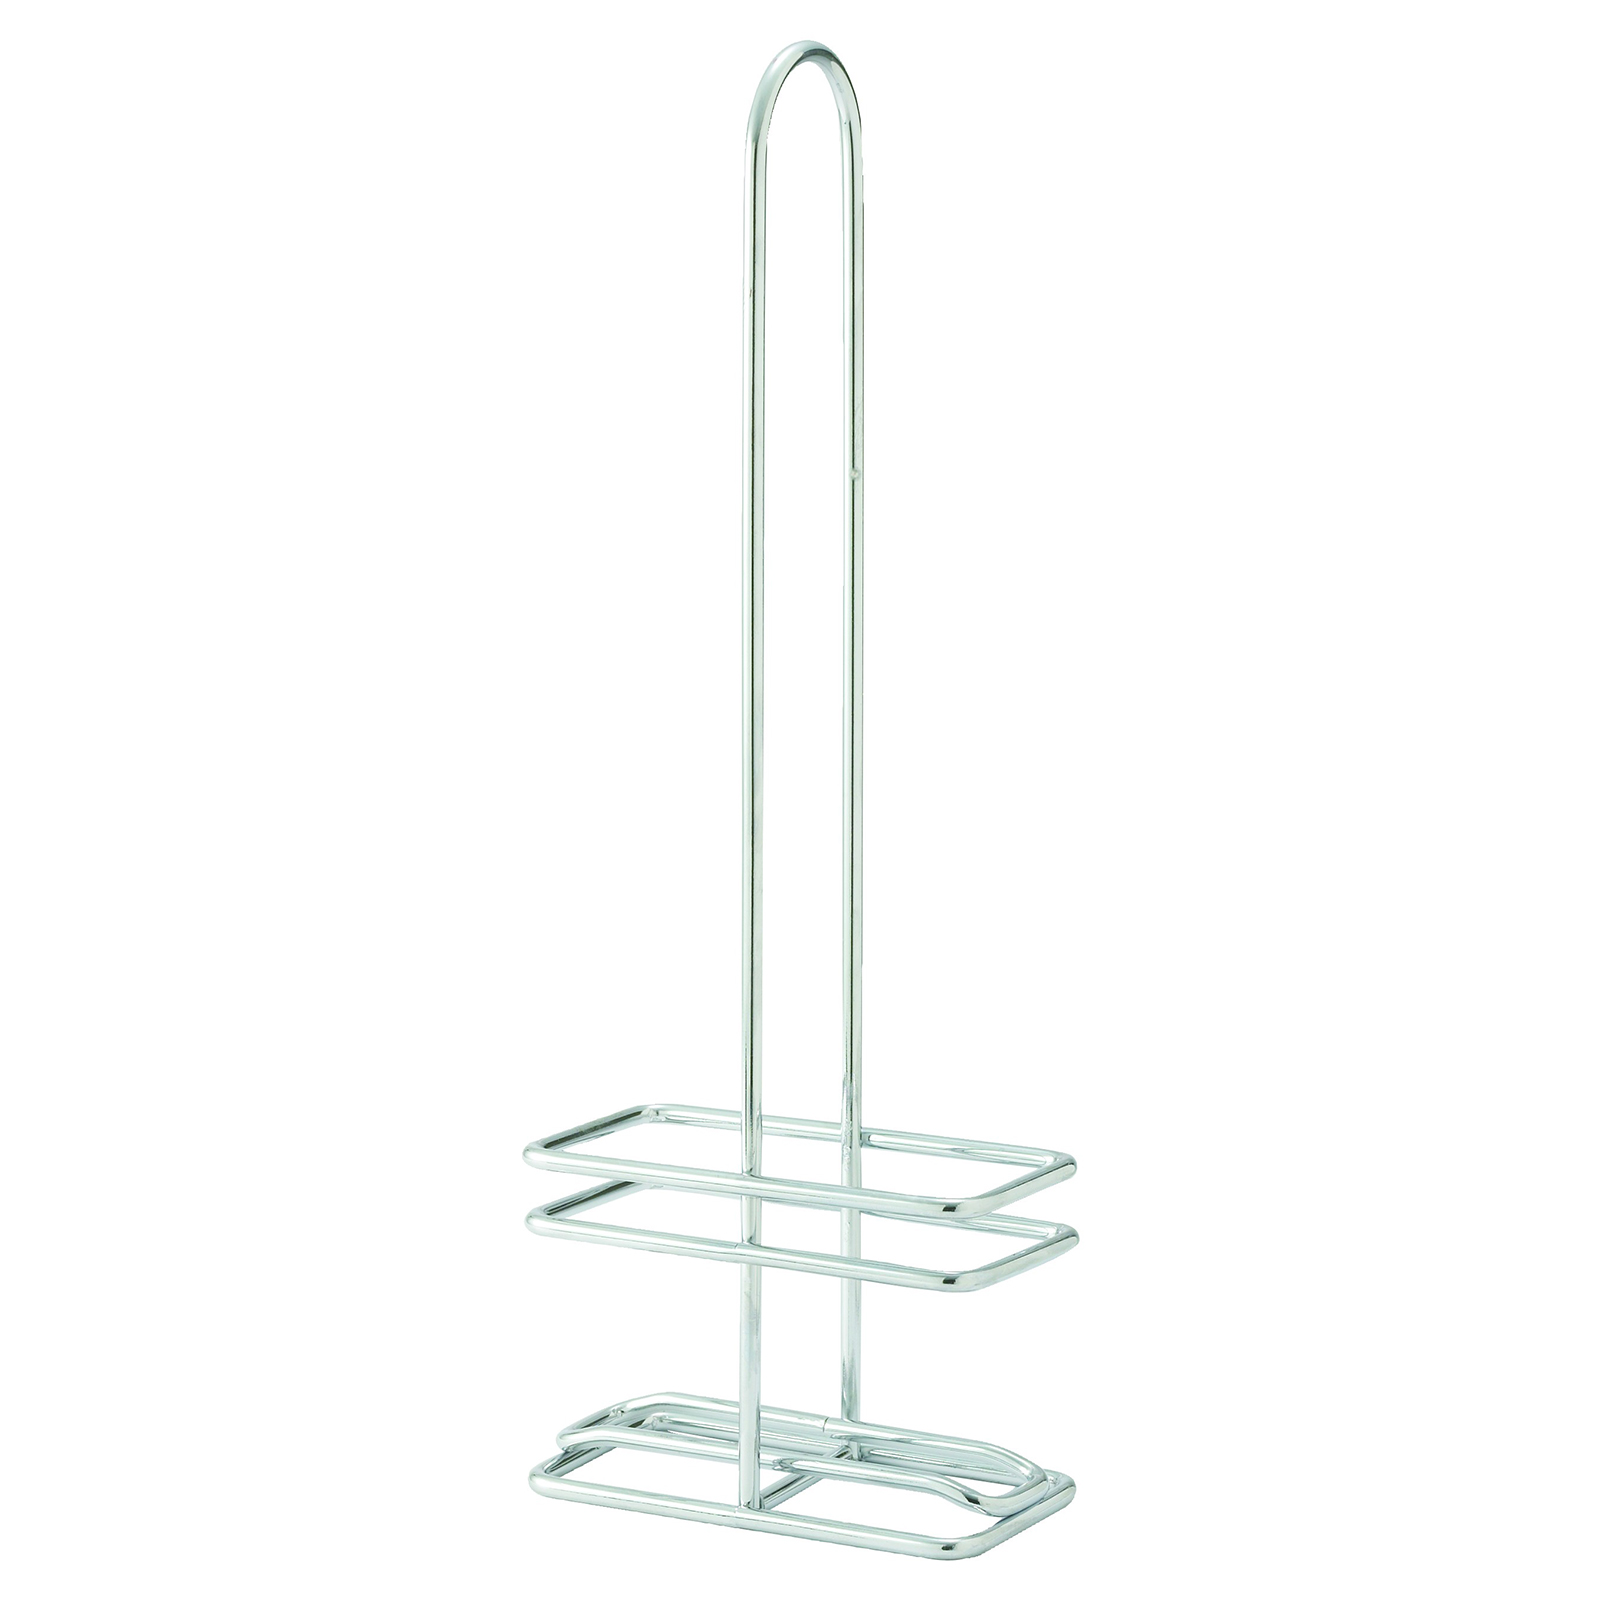 Winco WH-16 oil & vinegar cruet, rack